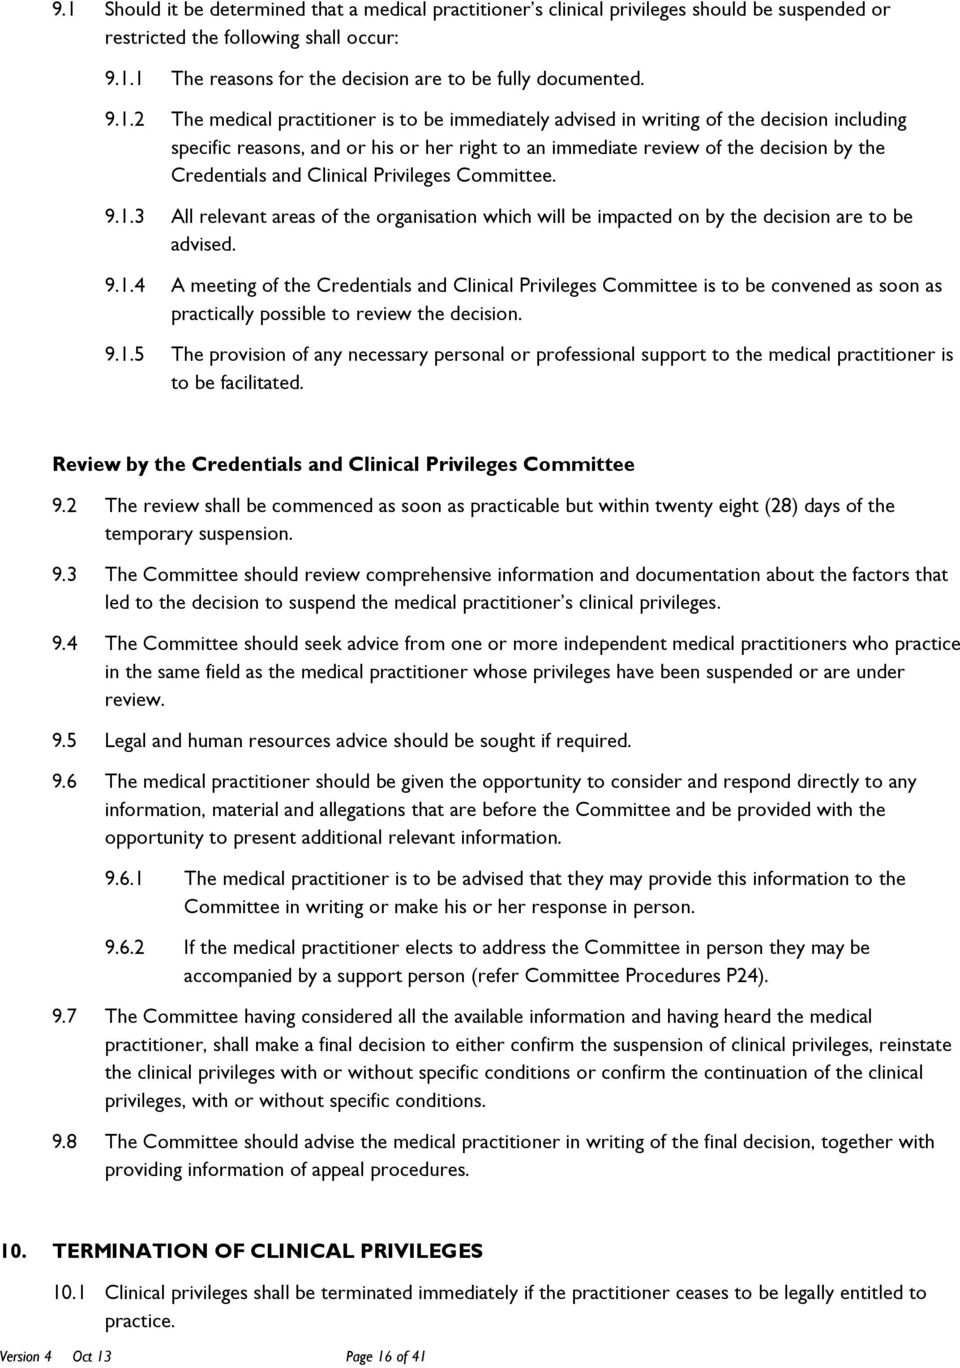 and Clinical Privileges Committee. 9.1.3 All relevant areas of the organisation which will be impacted on by the decision are to be advised. 9.1.4 A meeting of the Credentials and Clinical Privileges Committee is to be convened as soon as practically possible to review the decision.